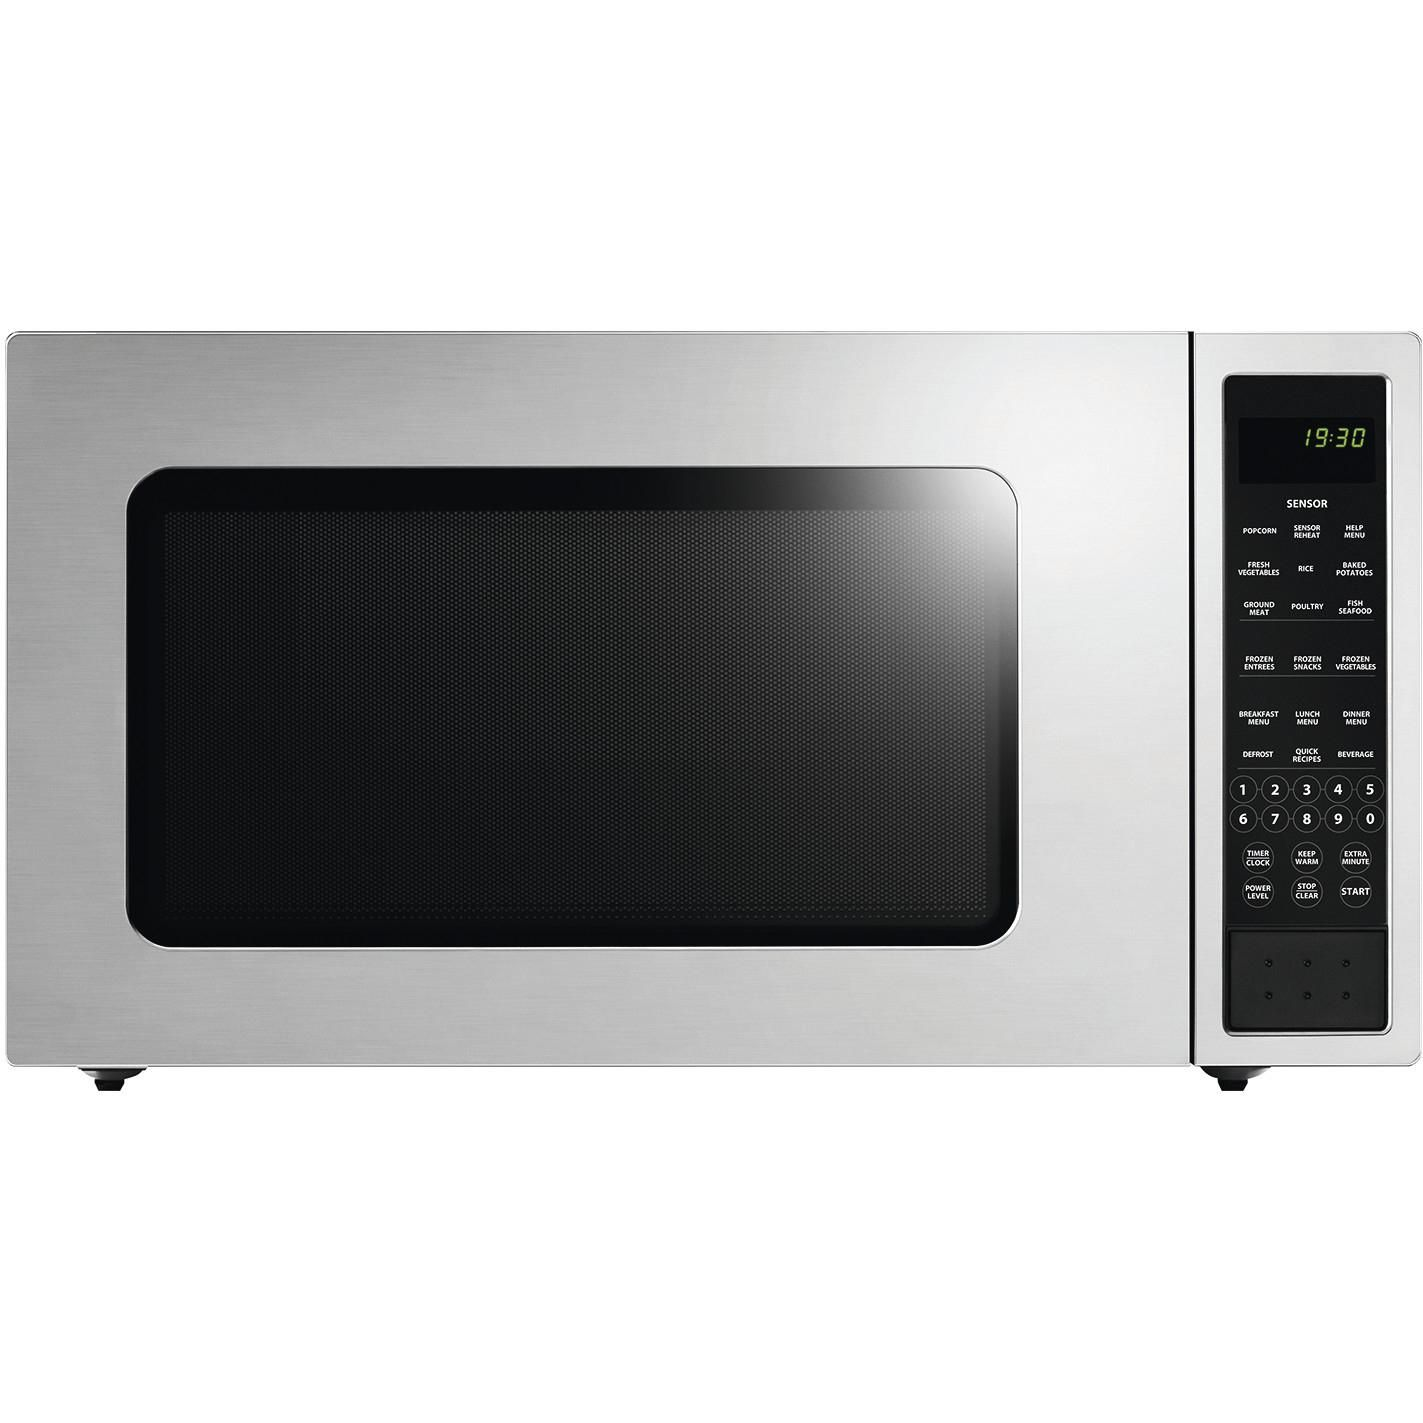 Fisher Paykel Formerly Dcs 24 1200 Watt Countertop Microwave Oven Stainless Steel Mo24ss 3 Y Stainless Steel Oven Countertop Microwave Oven Microwave Oven